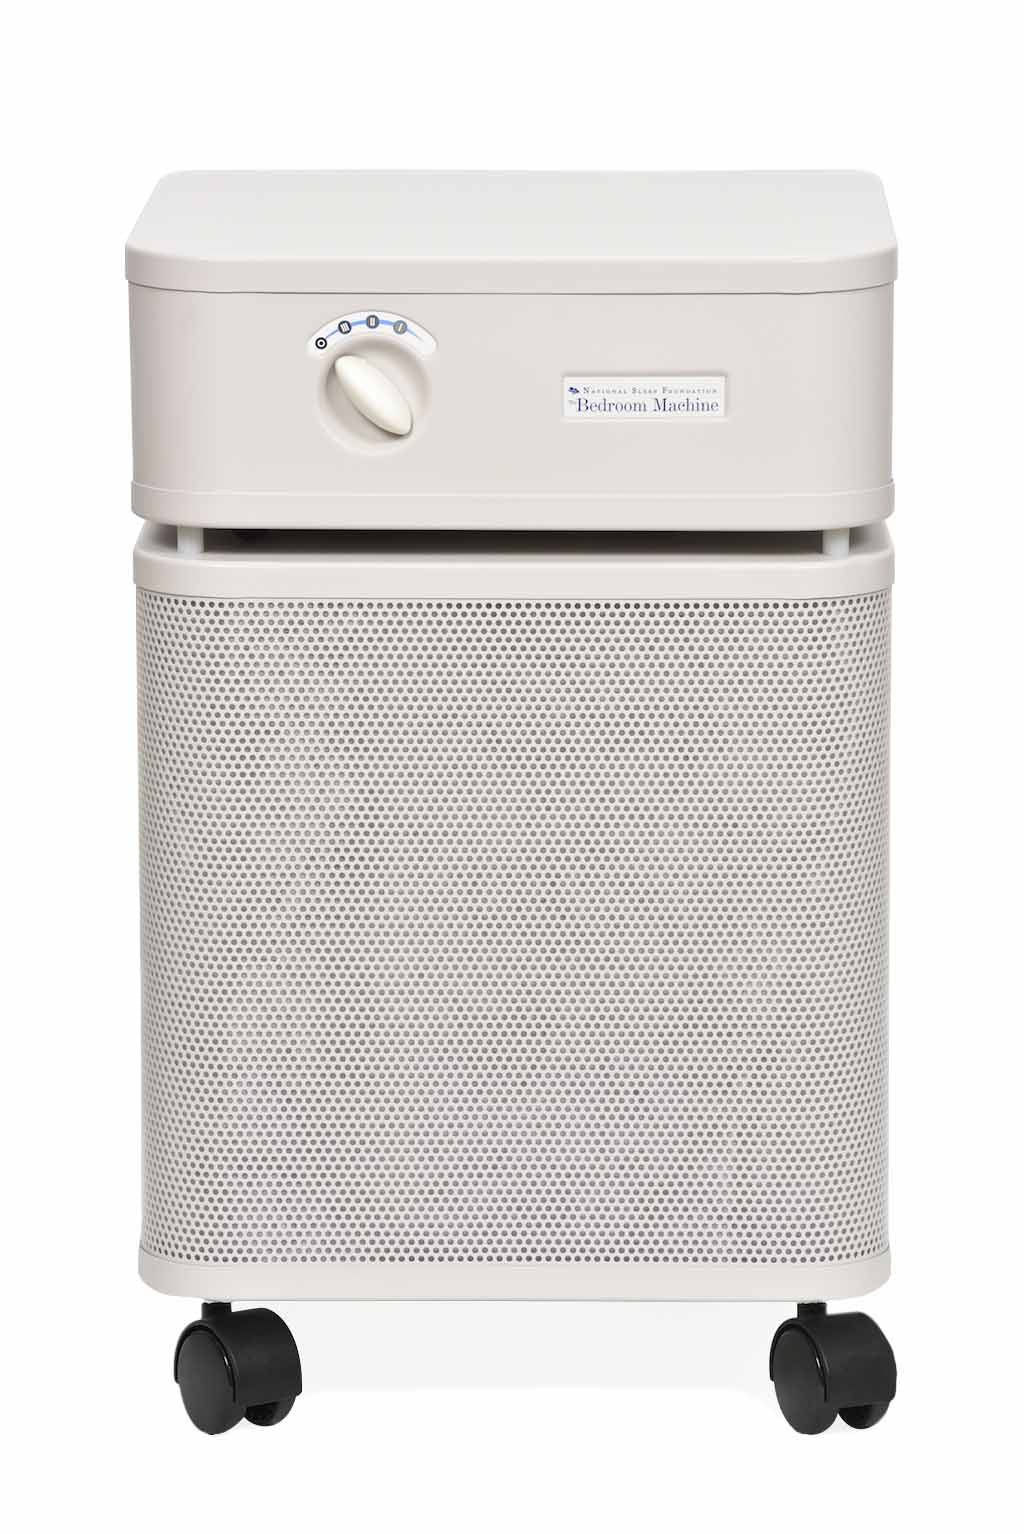 Bedroom Machine Hm402 Standard Hepa Air Purifier Austin Air Canada